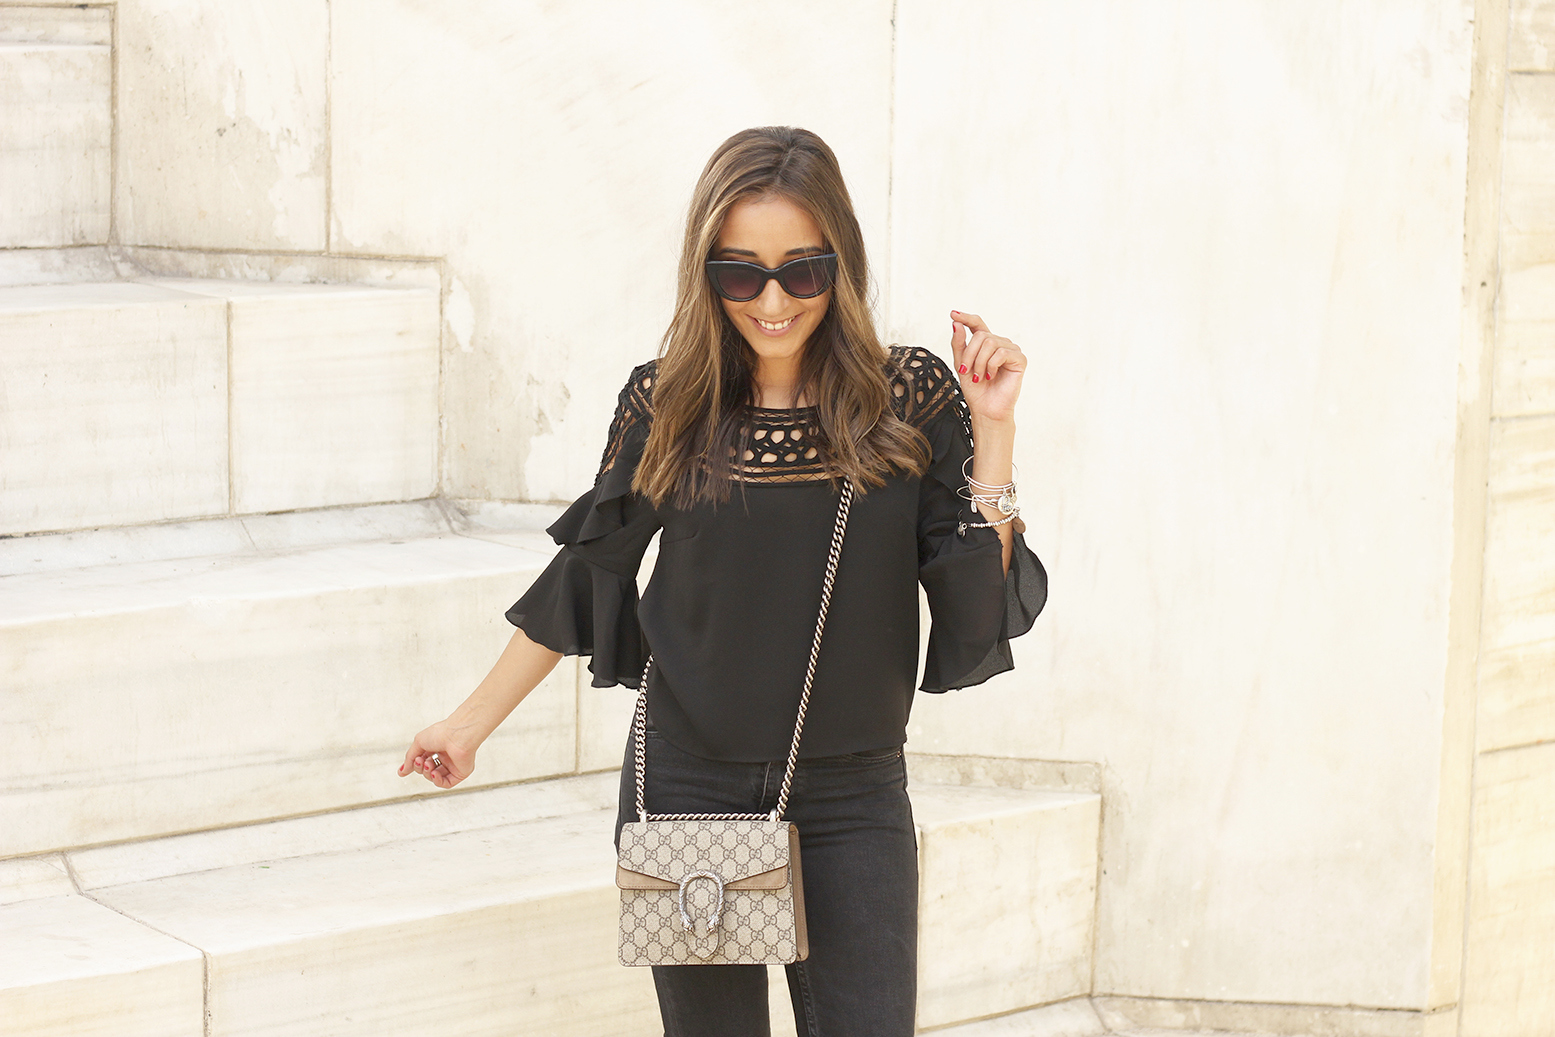 black top black jeans heels gucci bag sunnies outfit fashion style08